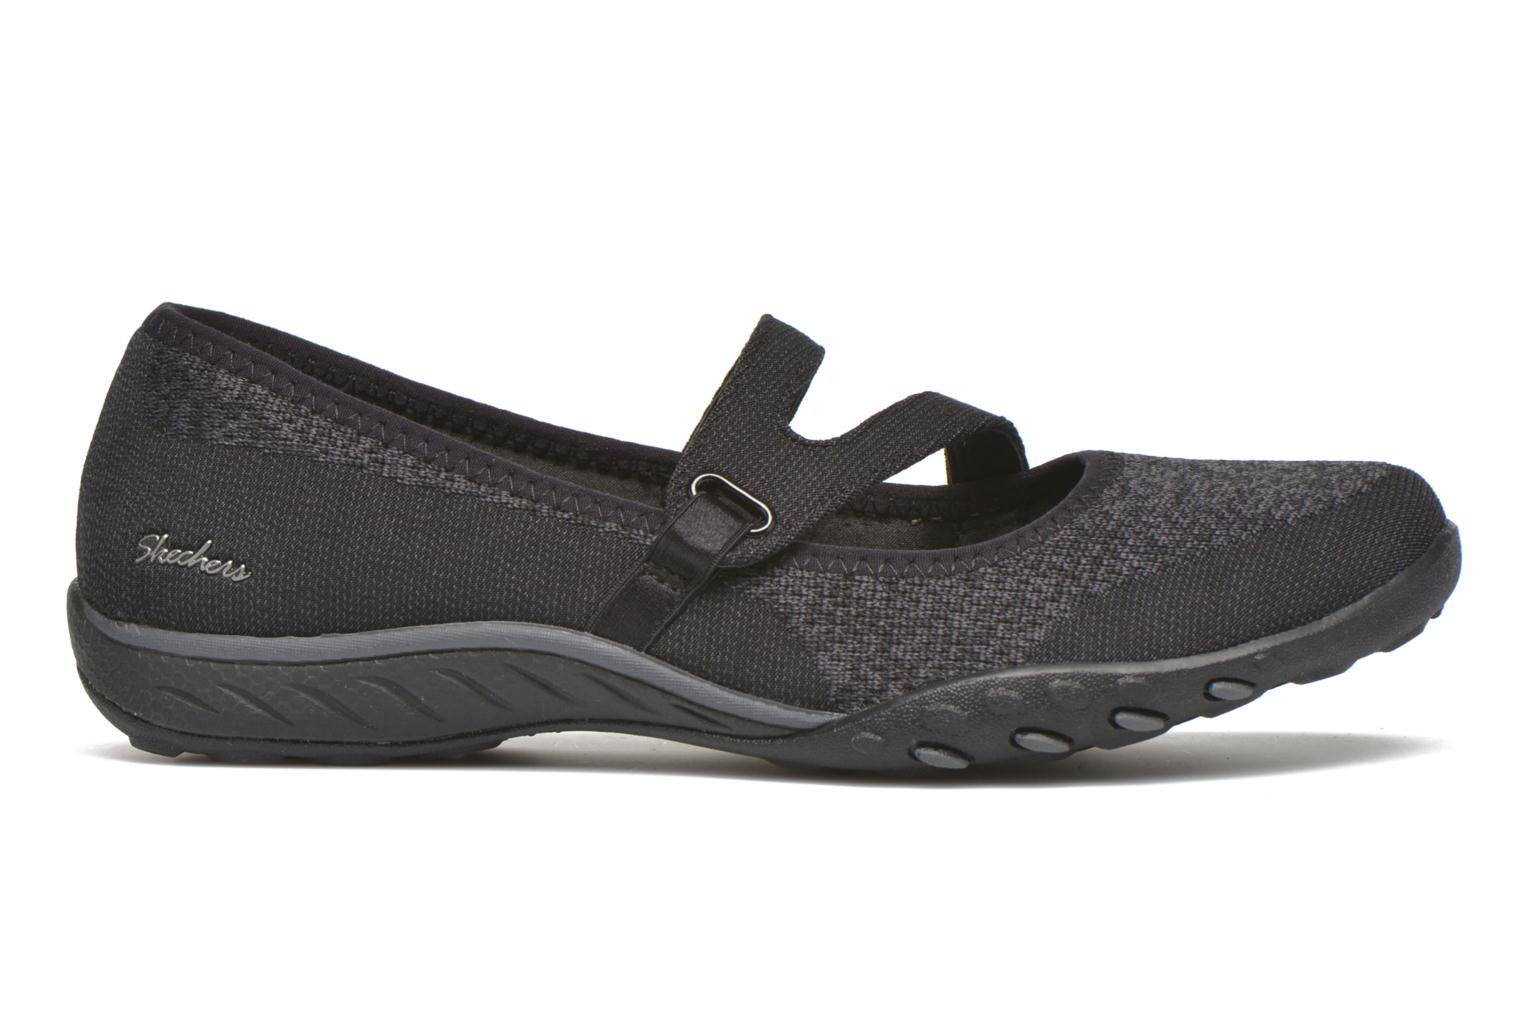 Bailarinas Skechers Breathe-Easy - Lucky Negro vistra trasera